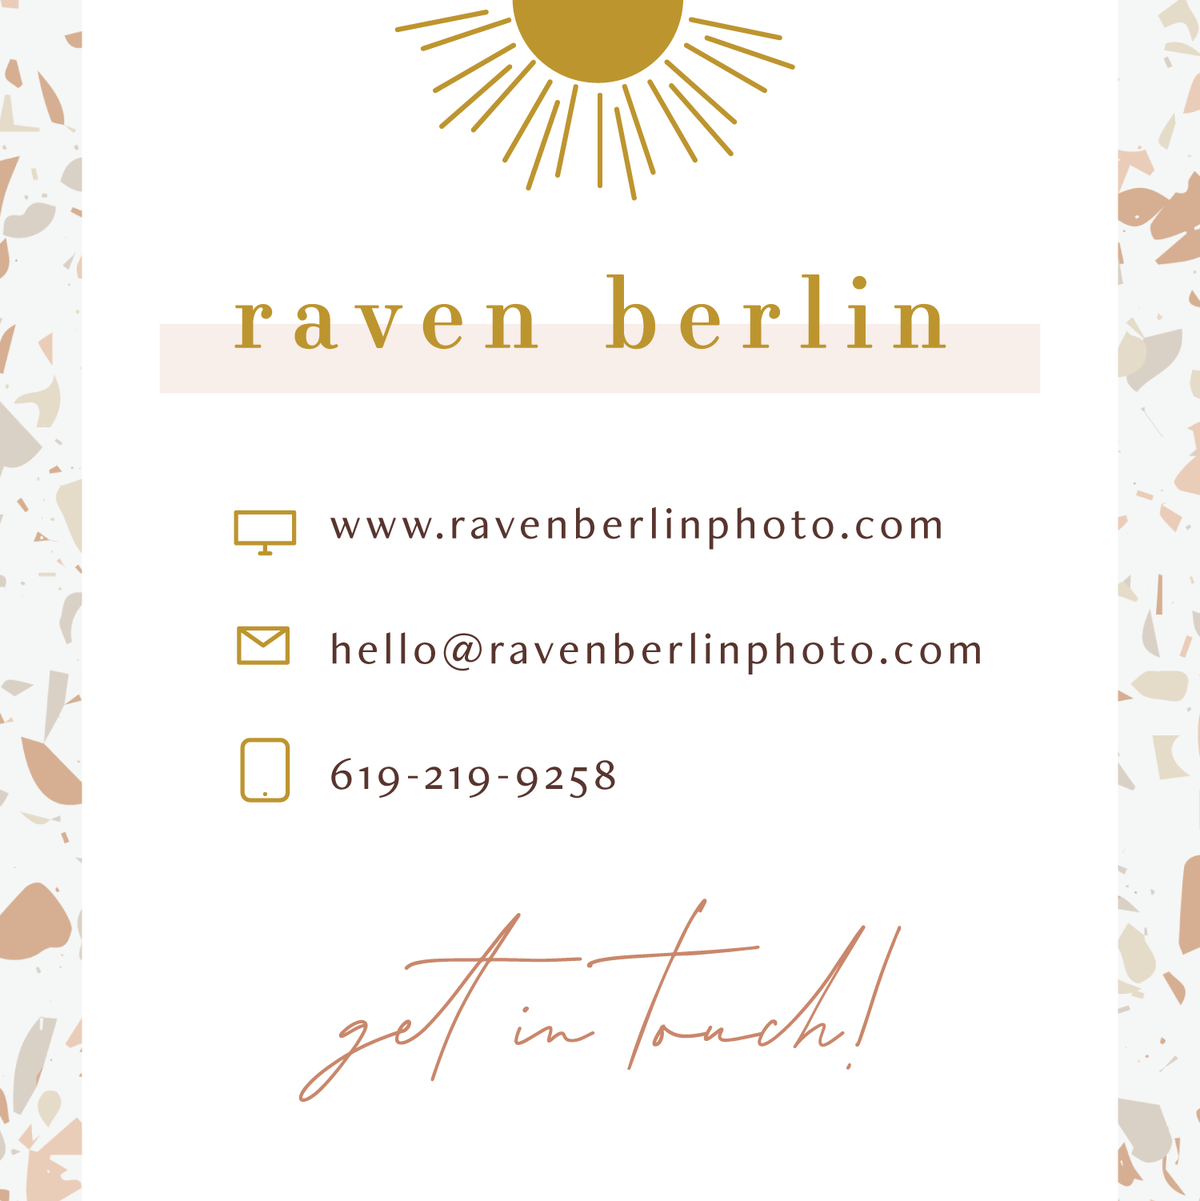 Raven Berlin Photo Business Cards-02